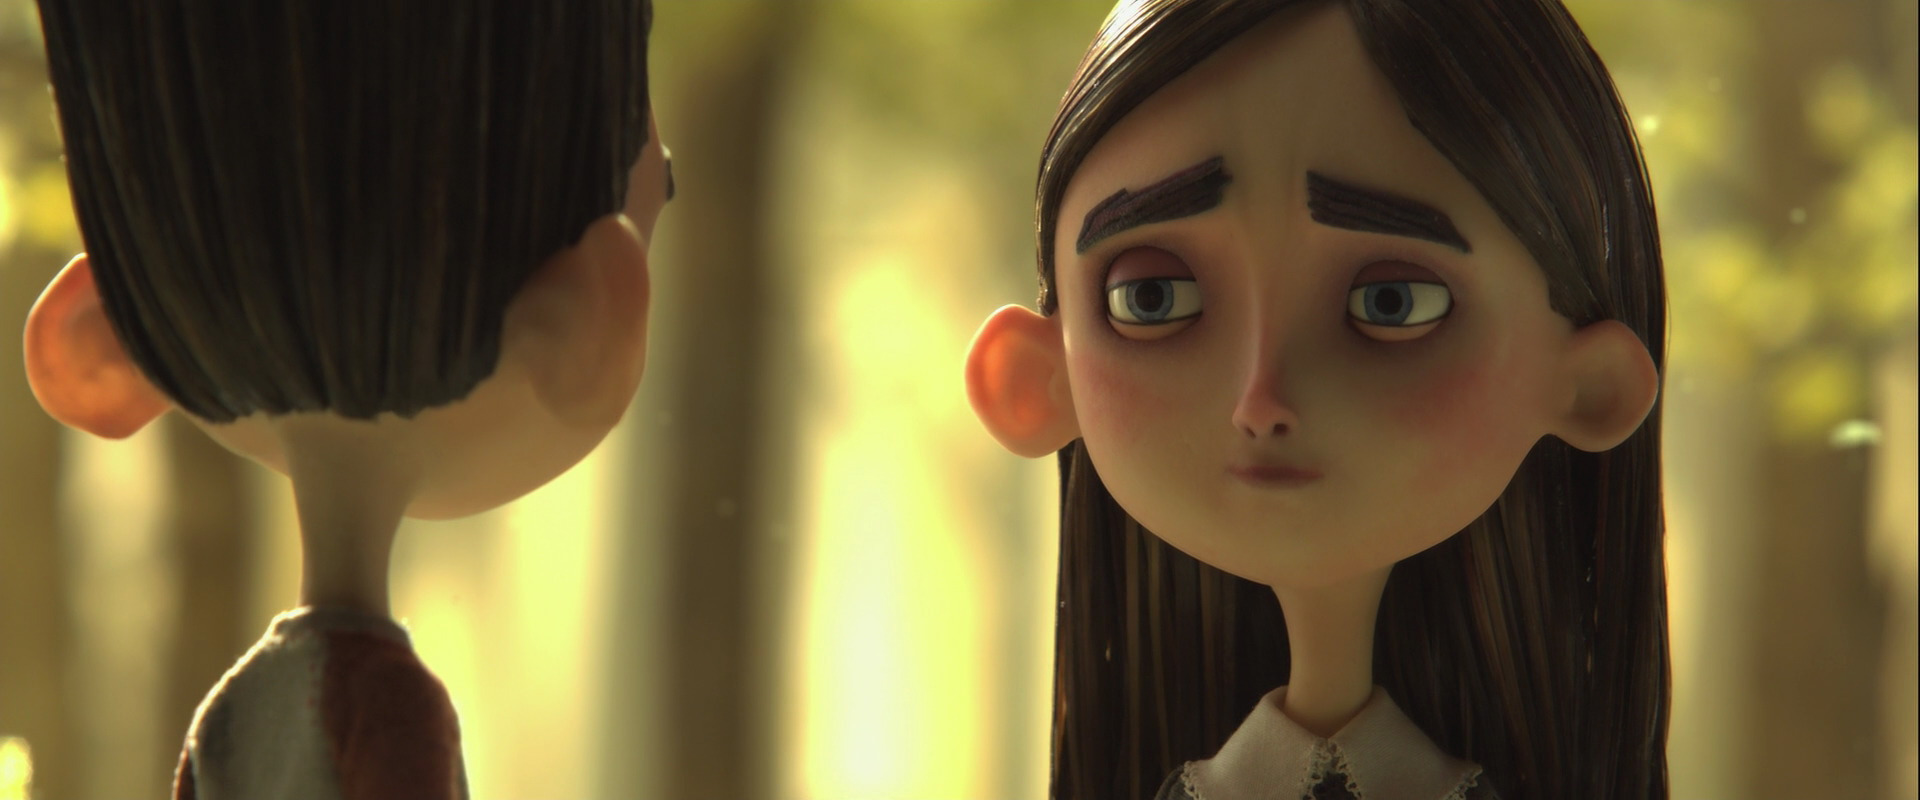 ParaNorman Flipped Chapter 1 Aggie Prenderghast a